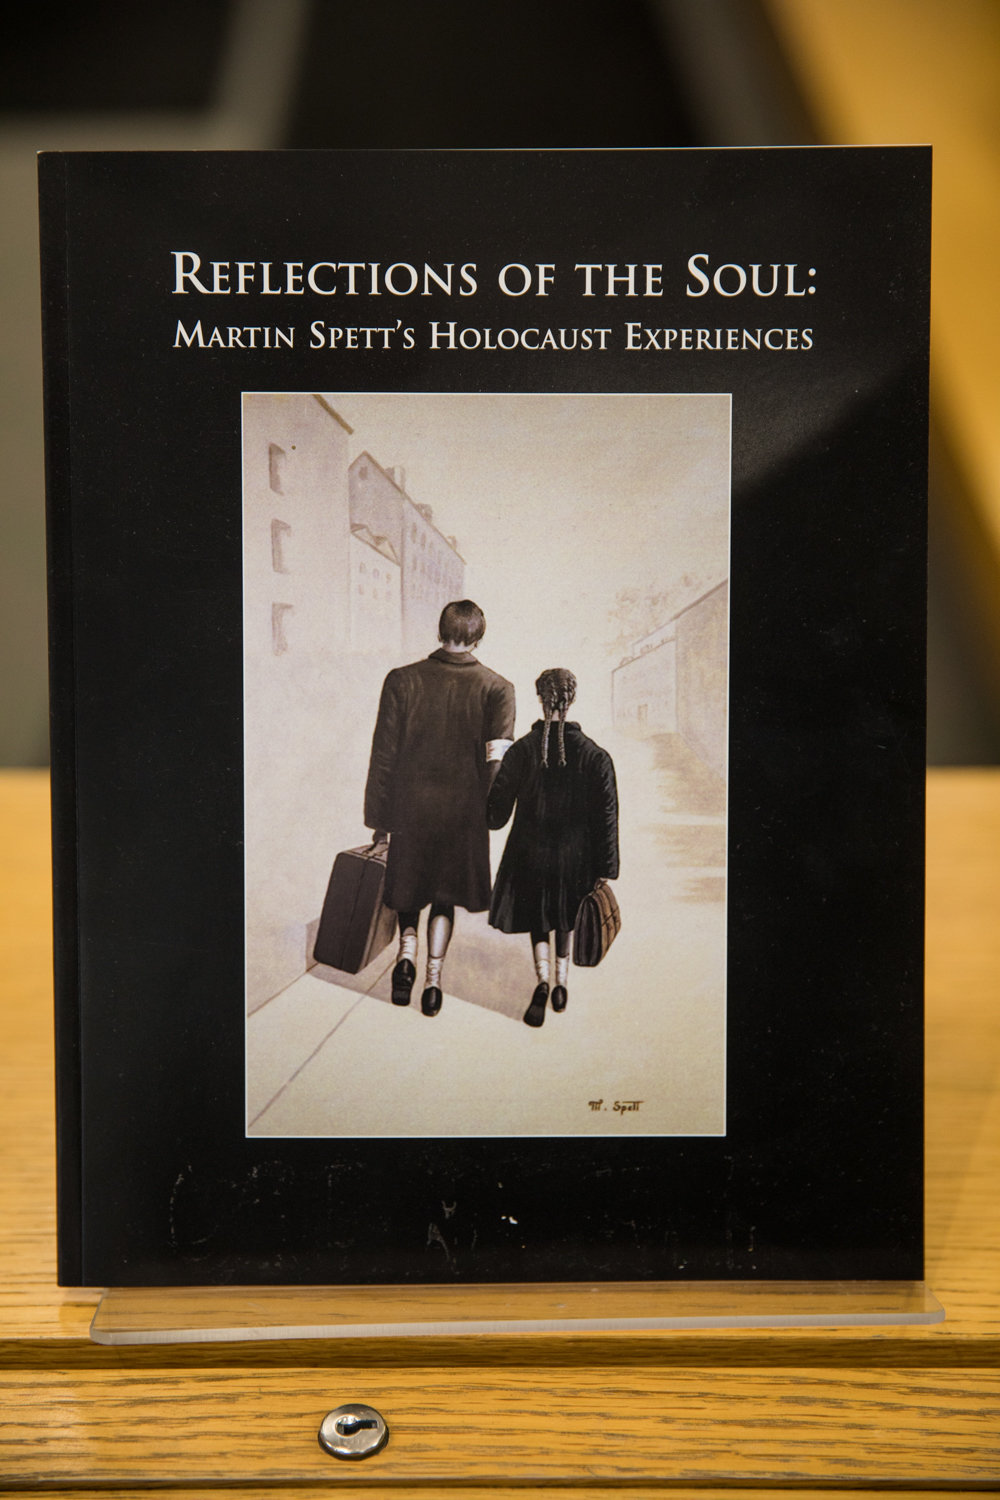 Martin Spett painted an image of him with sister Roslyn carrying suitcases leaving Tarnow, Poland, that adorns the cover of a book about his experience during the Holocaust. Spett died Oct. 20. He was 90.